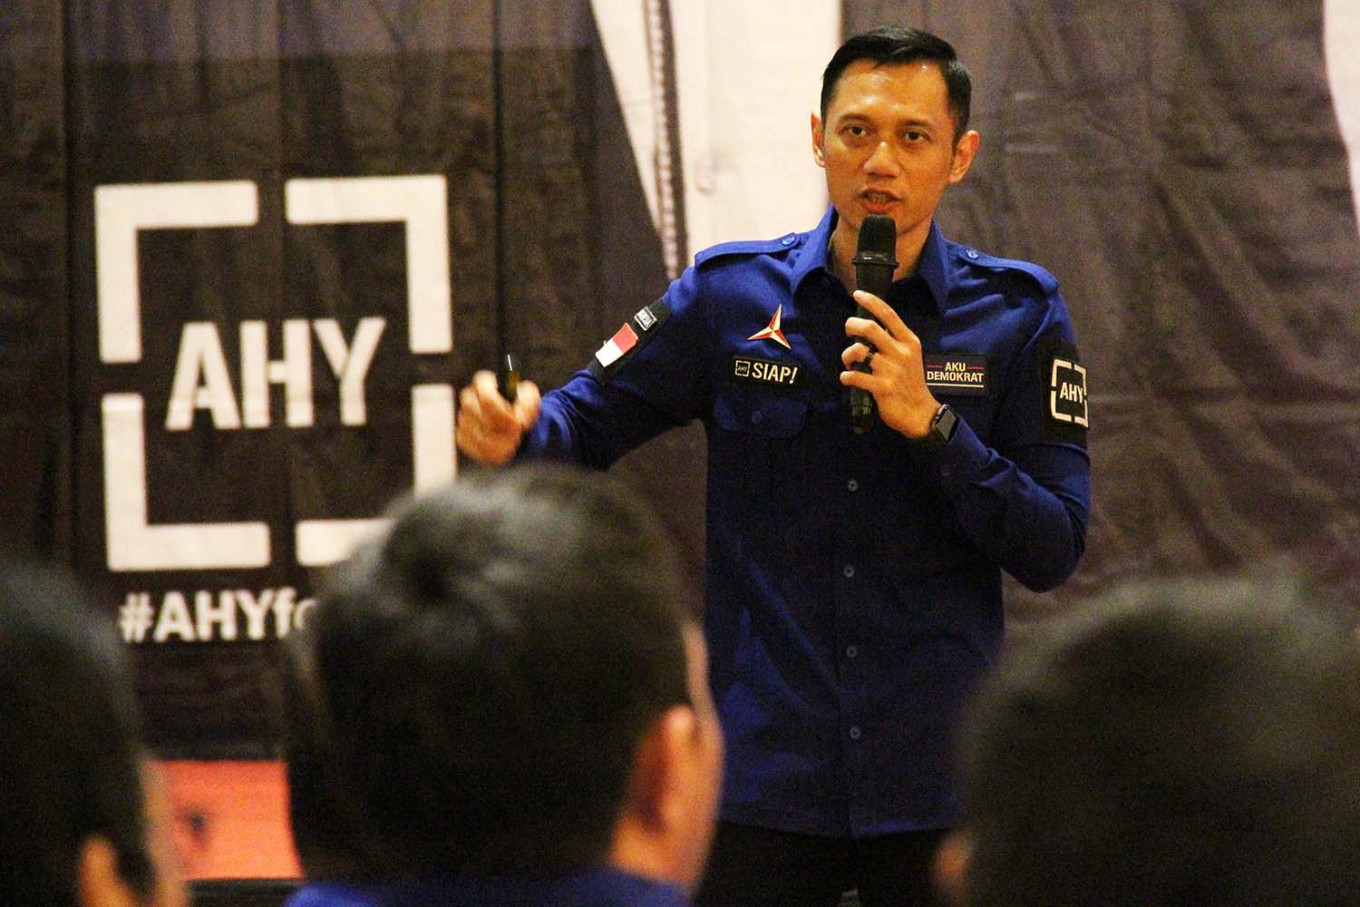 Agus Yudhoyono elected as Democratic Party chairman